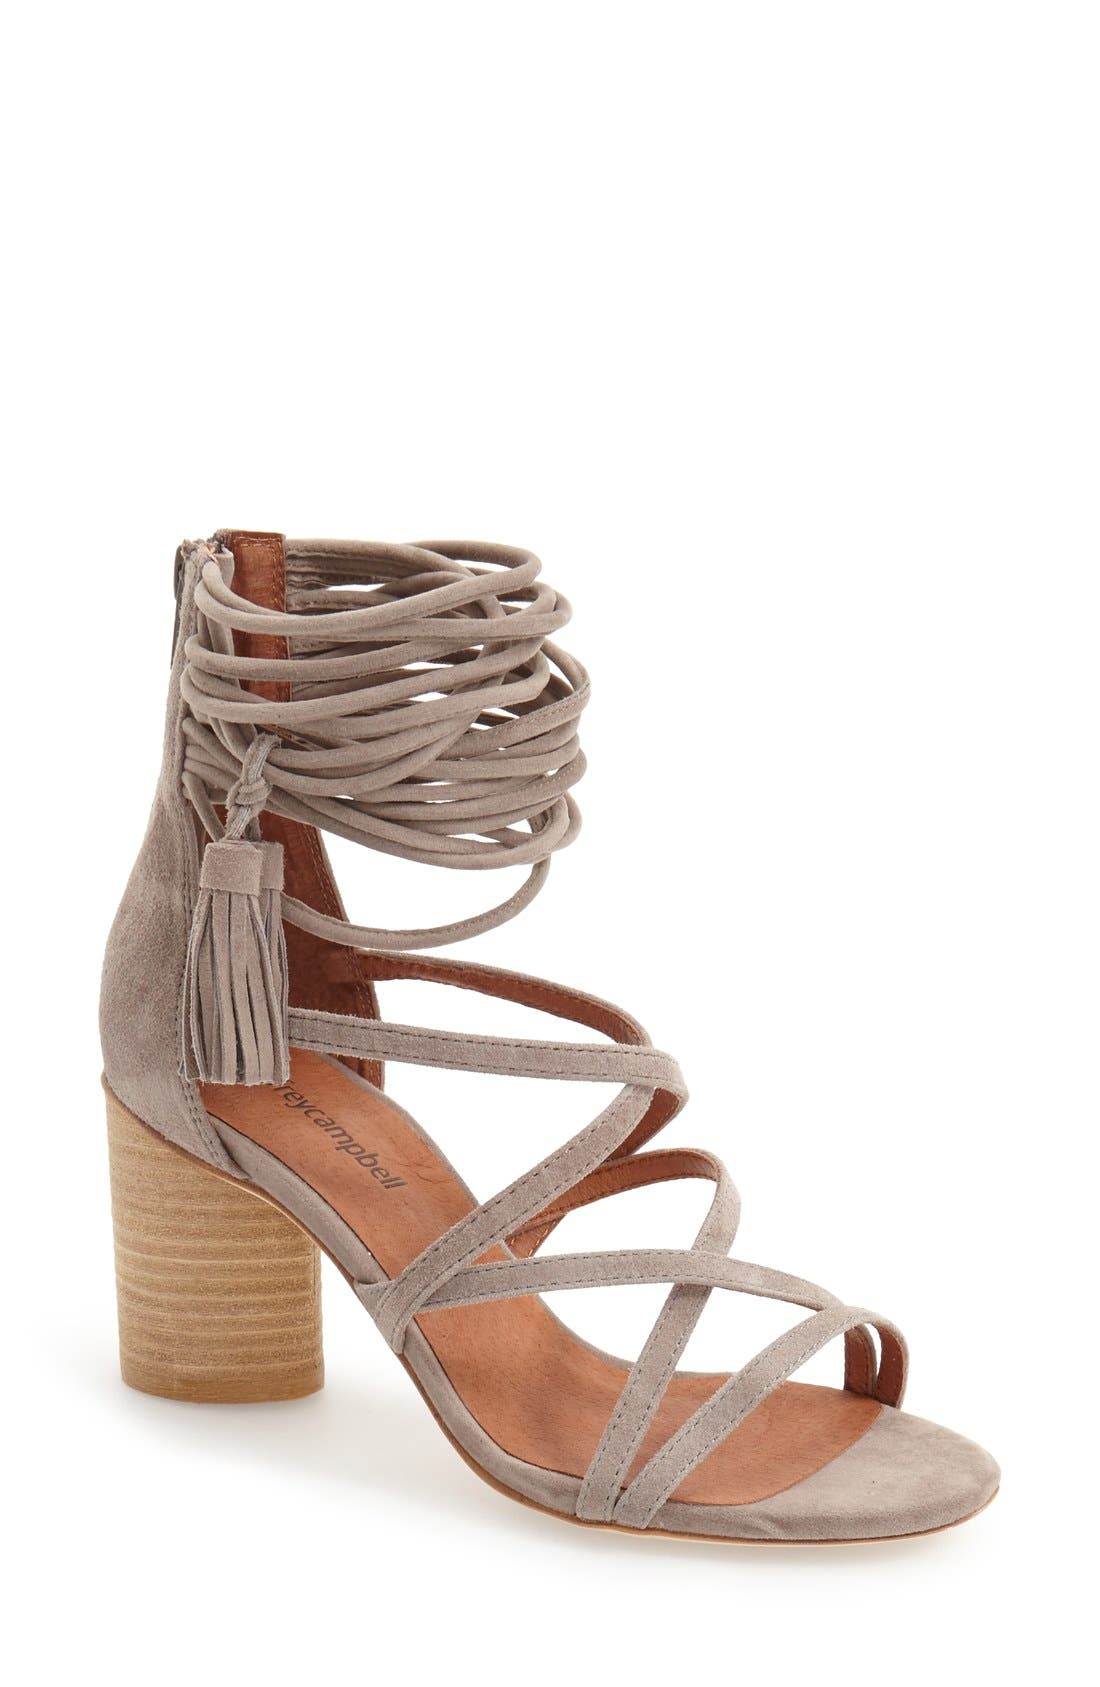 JEFFREY CAMPBELL, 'Despina' Strappy Sandal, Main thumbnail 1, color, TAUPE SUEDE